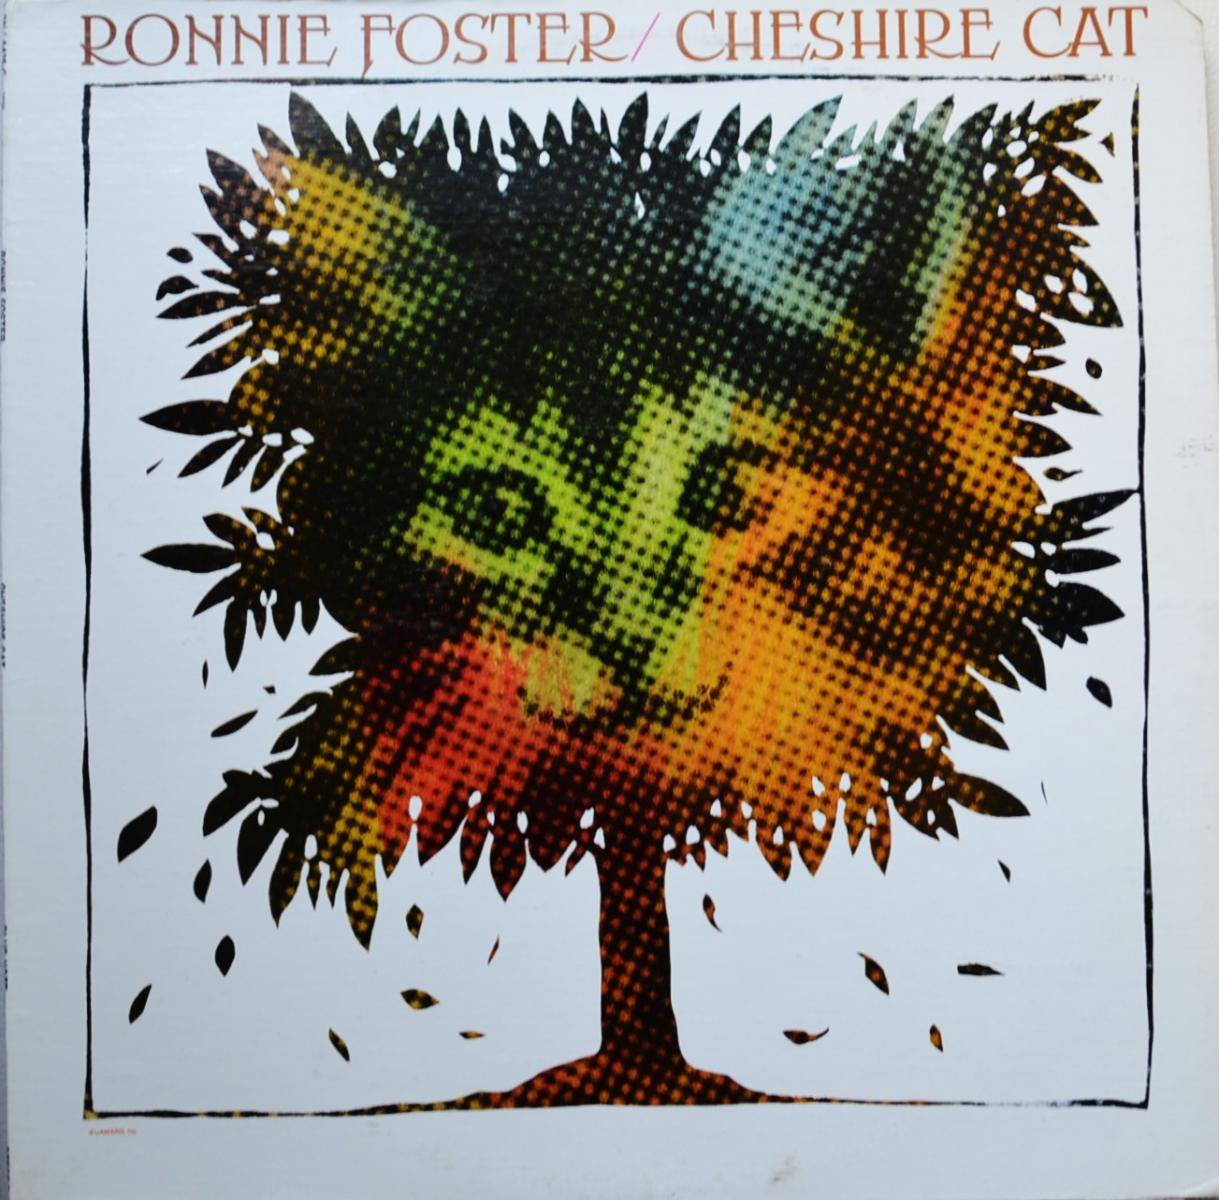 RONNIE FOSTER / CHESHIRE CAT (LP)